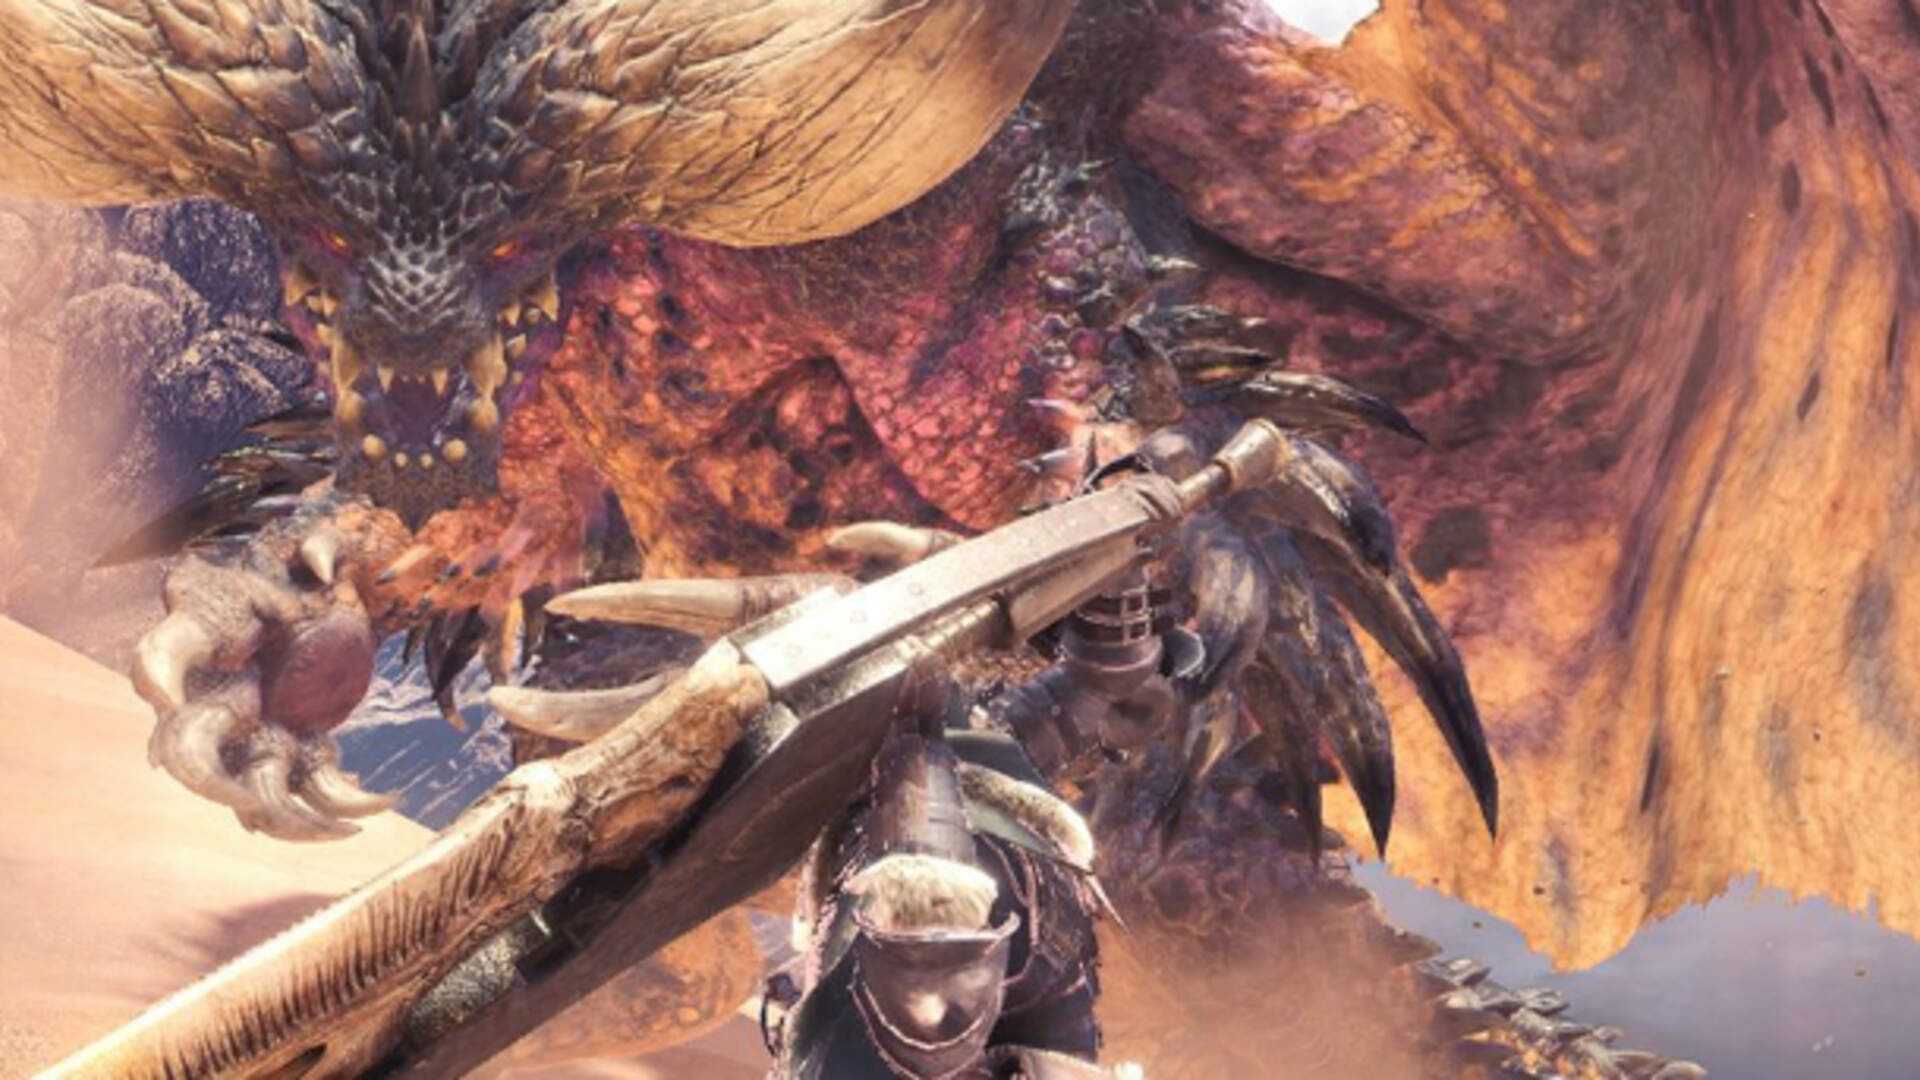 Monster Hunter: World PC Version Scheduled for Fall 2018